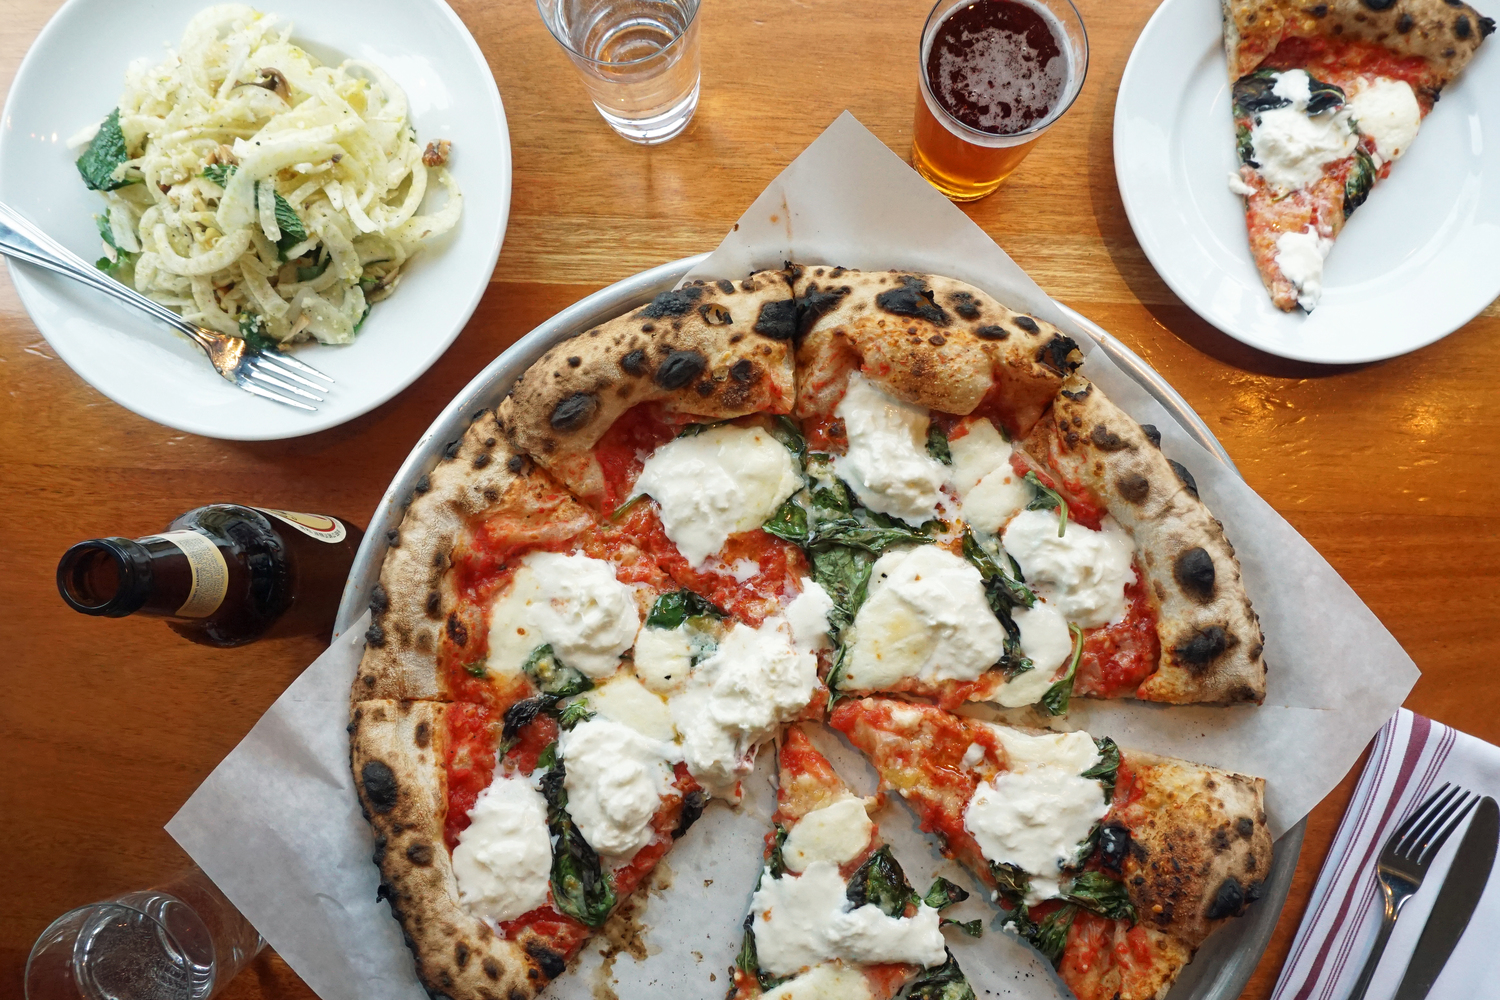 Destination for pizza lovers